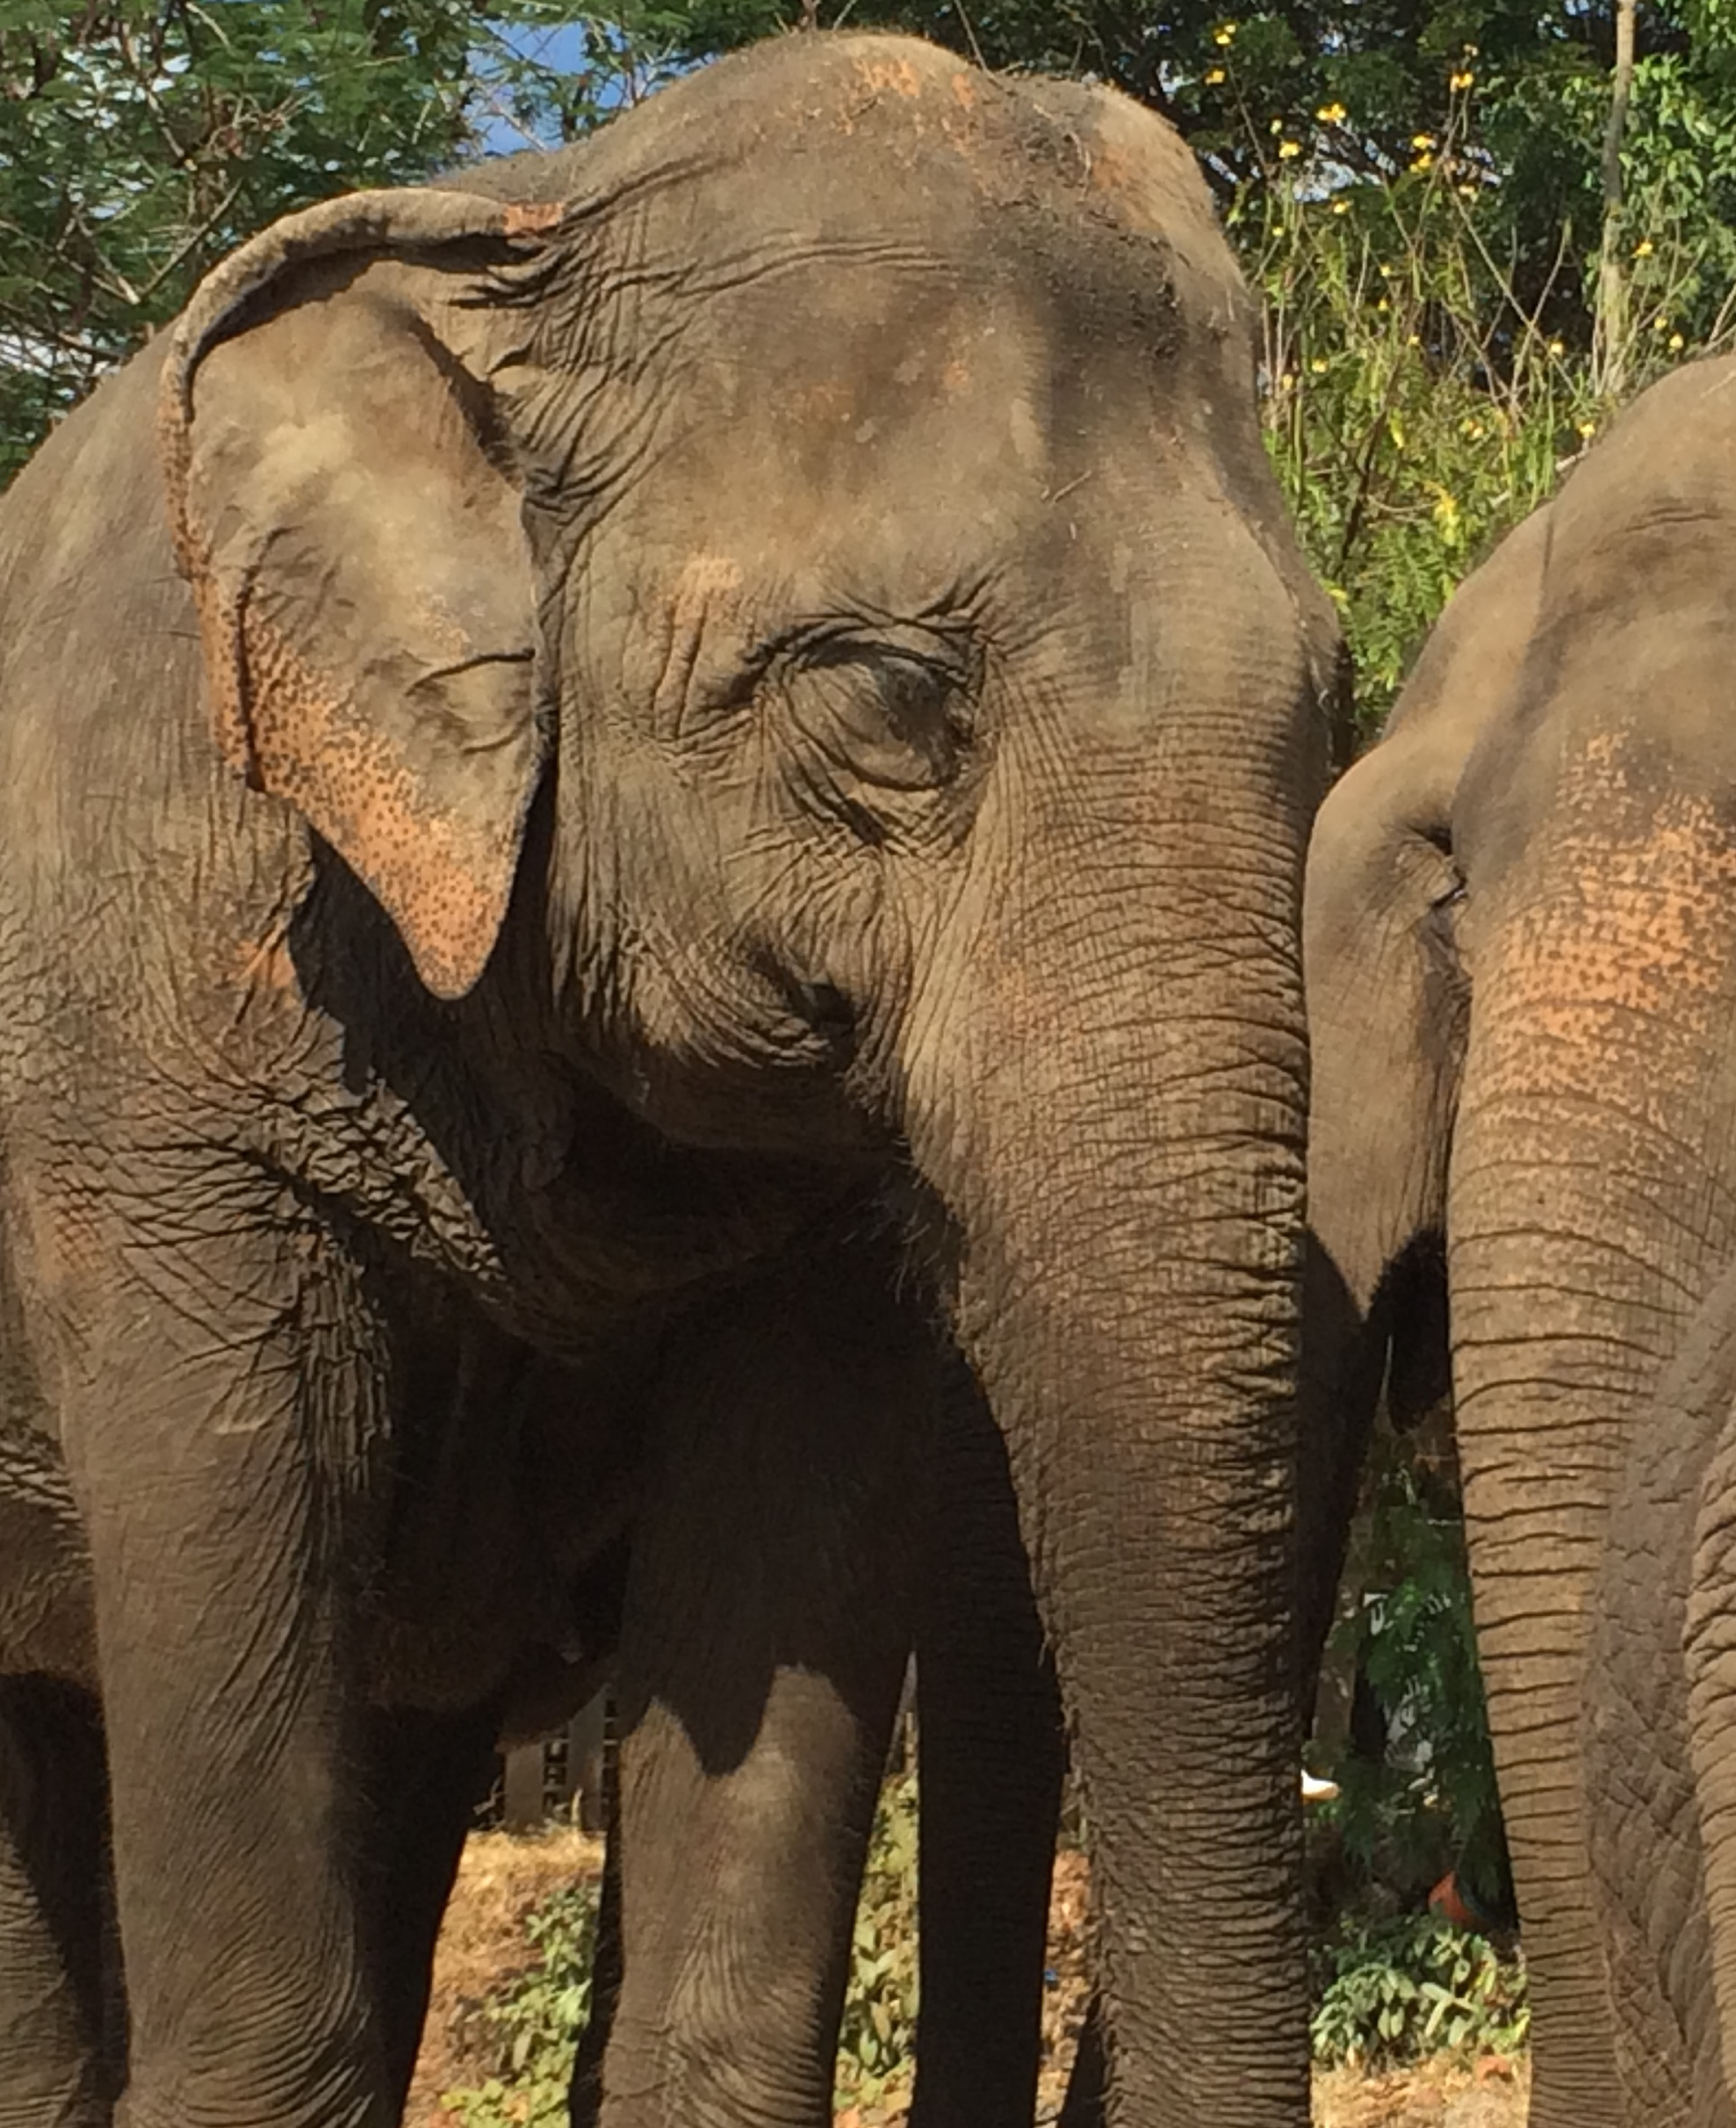 vanishing animals essay Short essay on wildlife in danger  many species of animals are not able to adapt to the changed conditions  many countries have agreed to prohibit trade the .